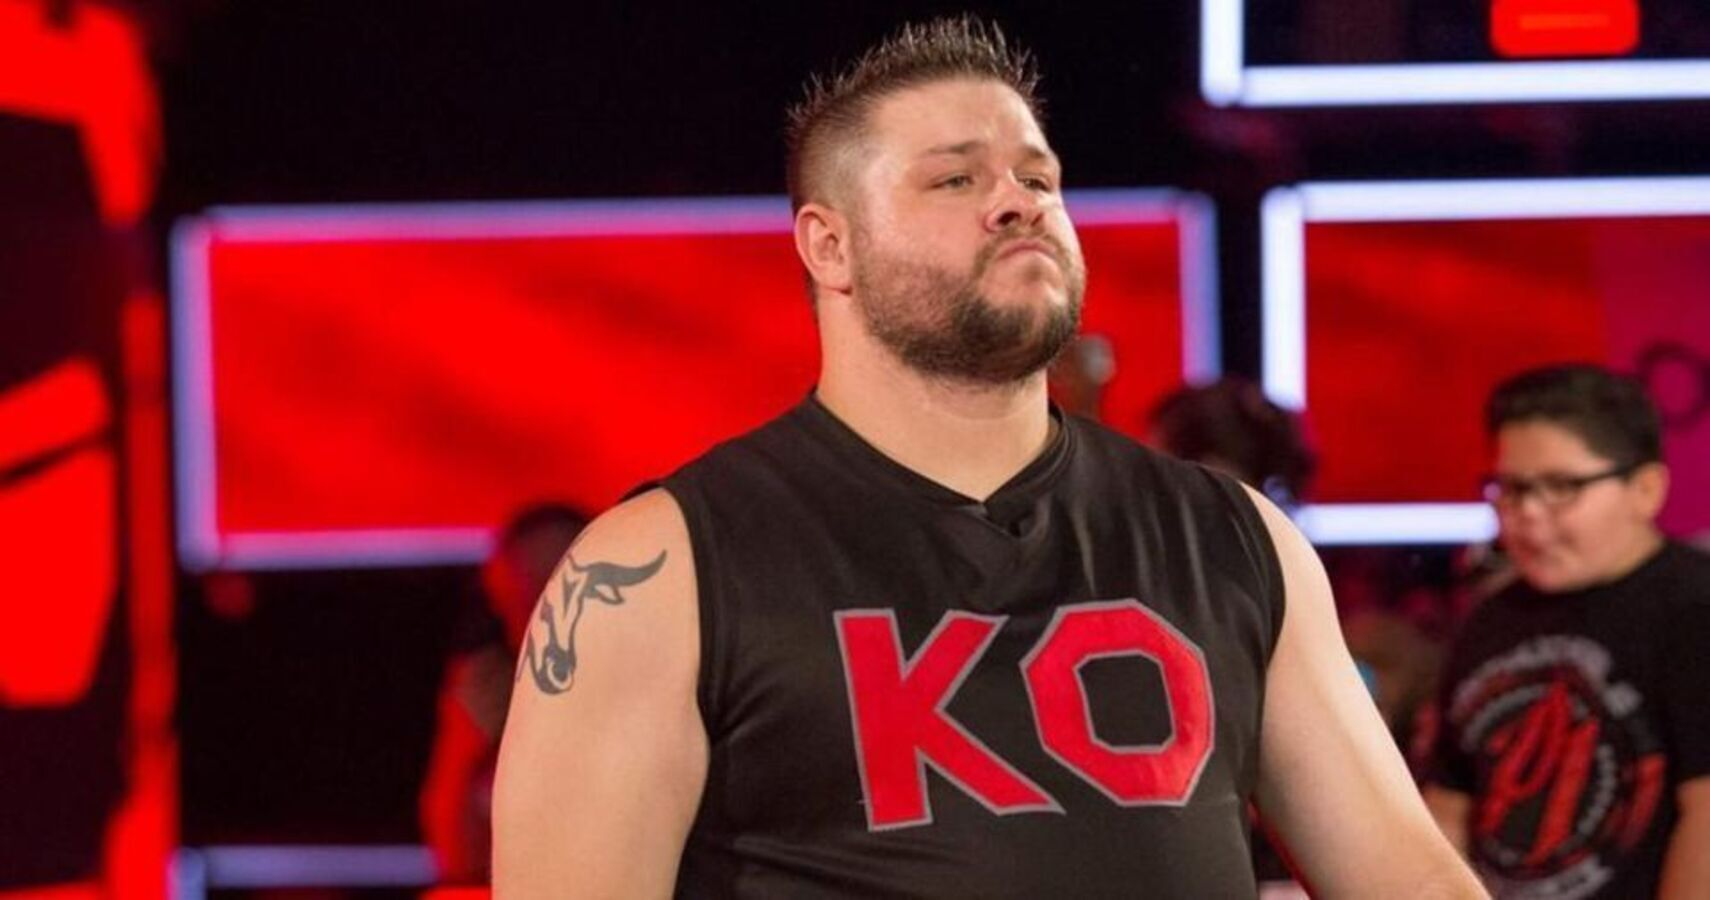 [Report] Backstage Reason For Kevin Owens' WWE Hiatus Revealed